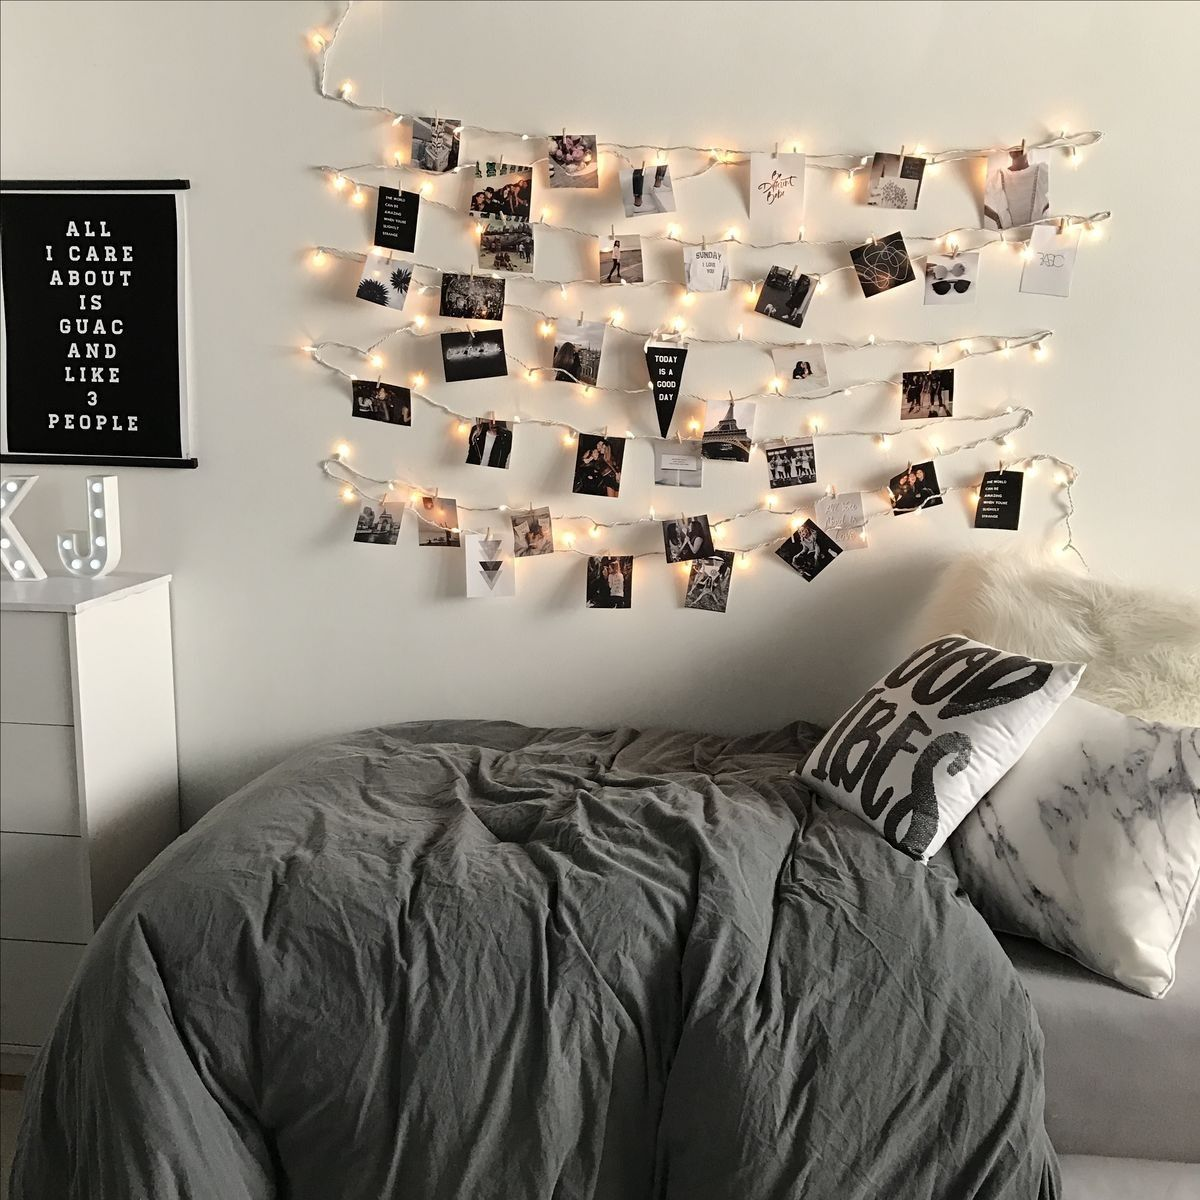 Fotos pared diy pinterest dormitorio ideas para - Decoracion de paredes con fotos ...